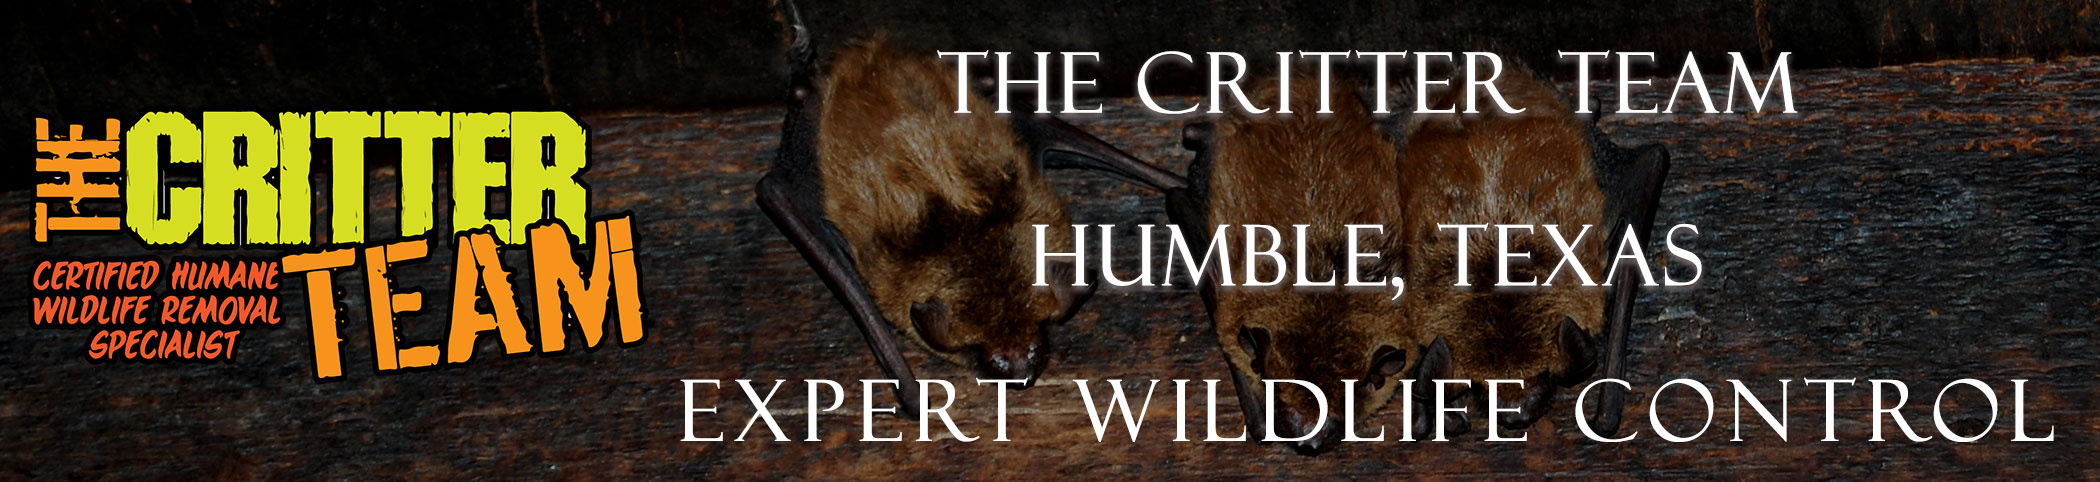 humble_texas_critter_team_headers